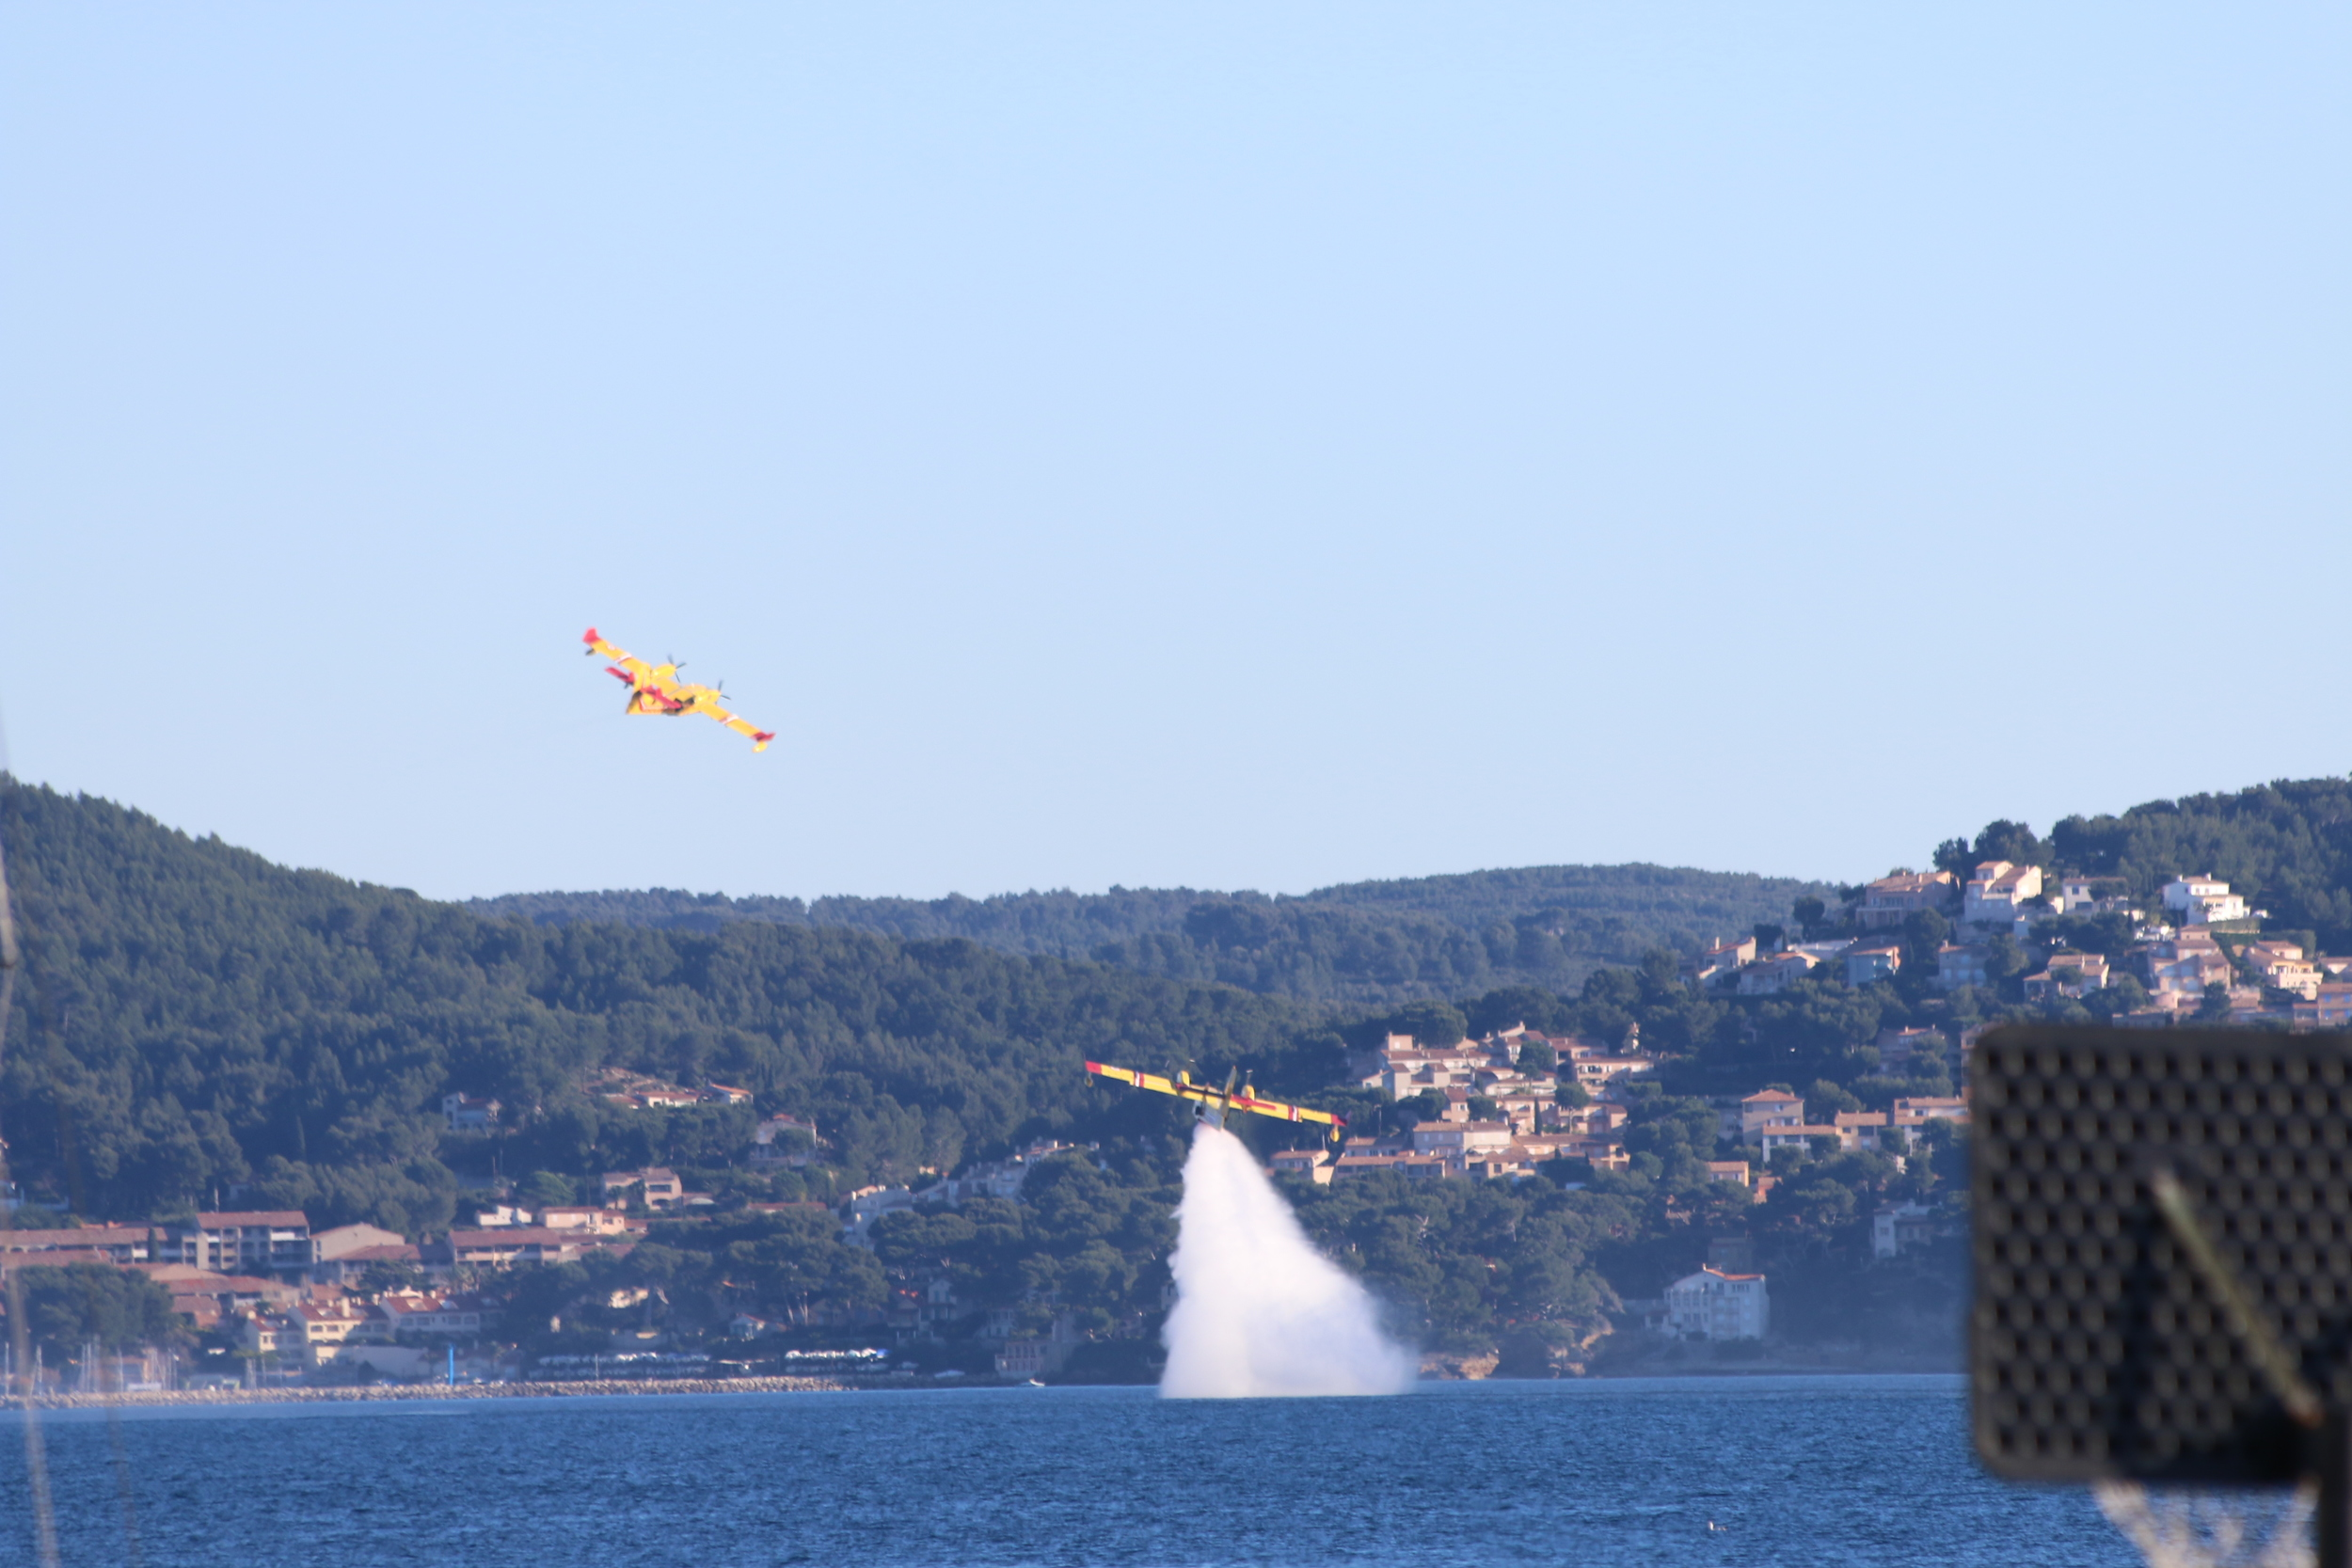 La Ciotat: fire fighting planes practicing filling and emptying water tanks.